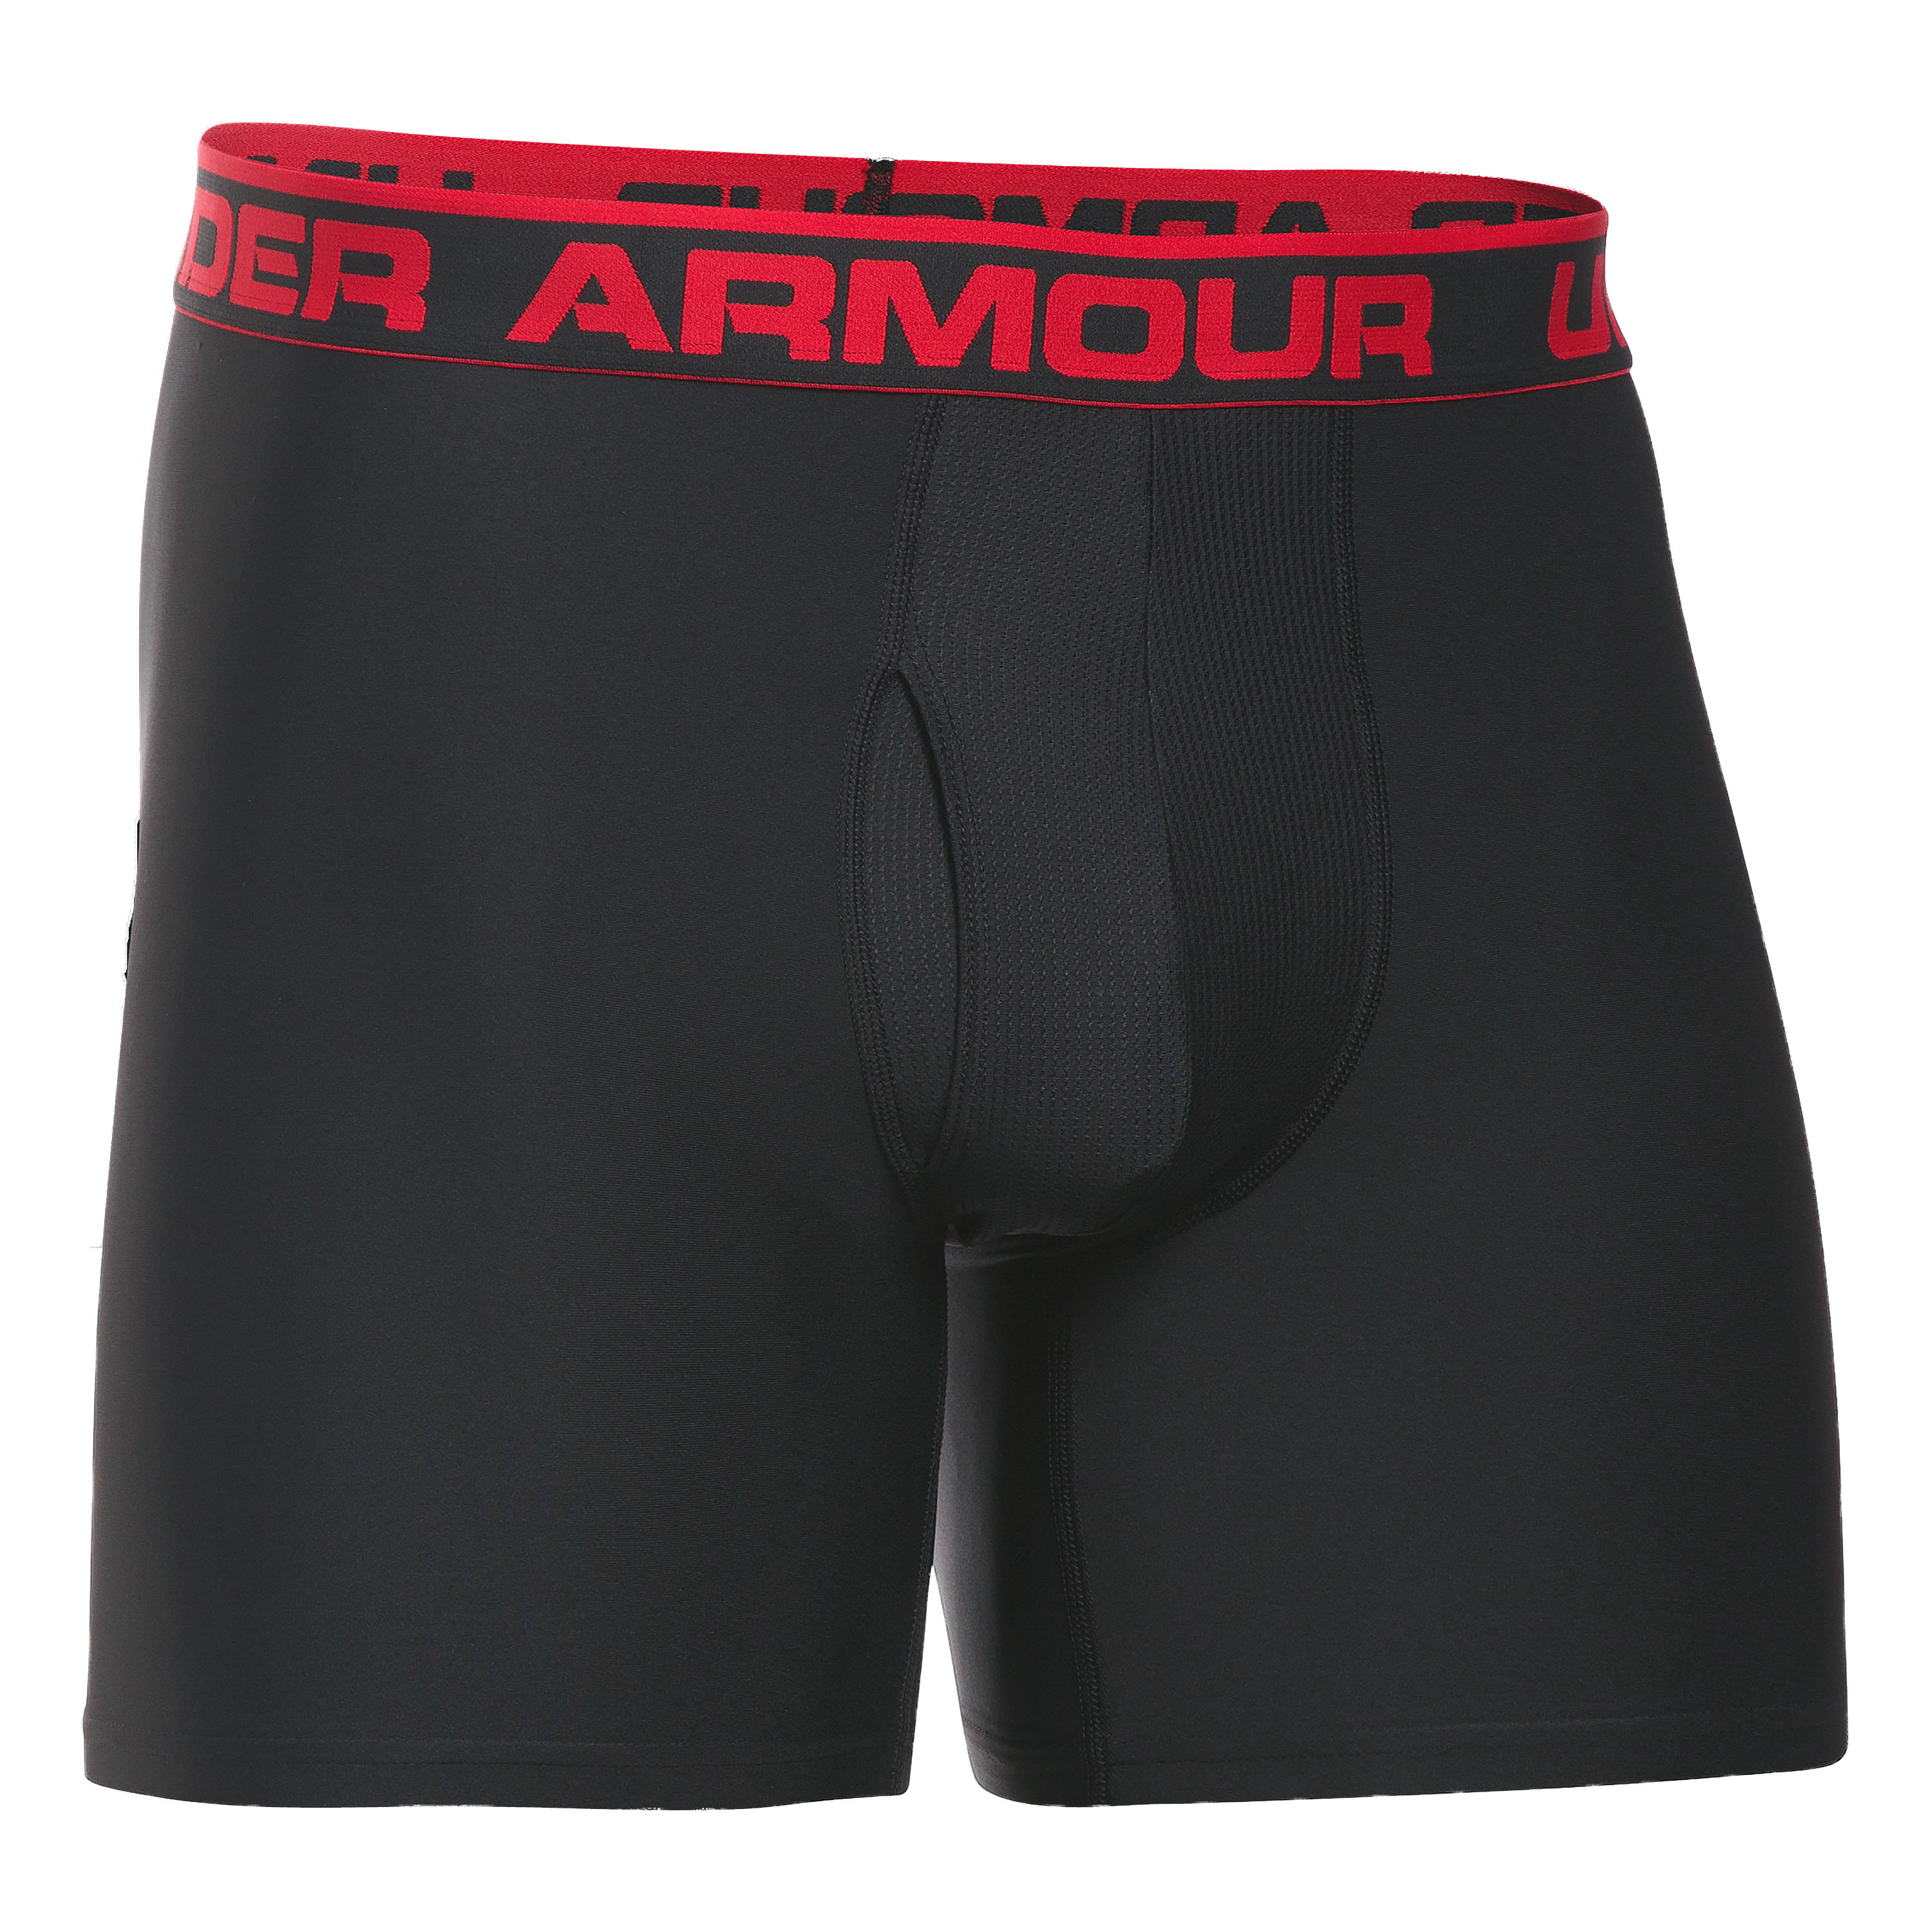 Under Armour Boxer Shorts O Series 6 2er Pack black